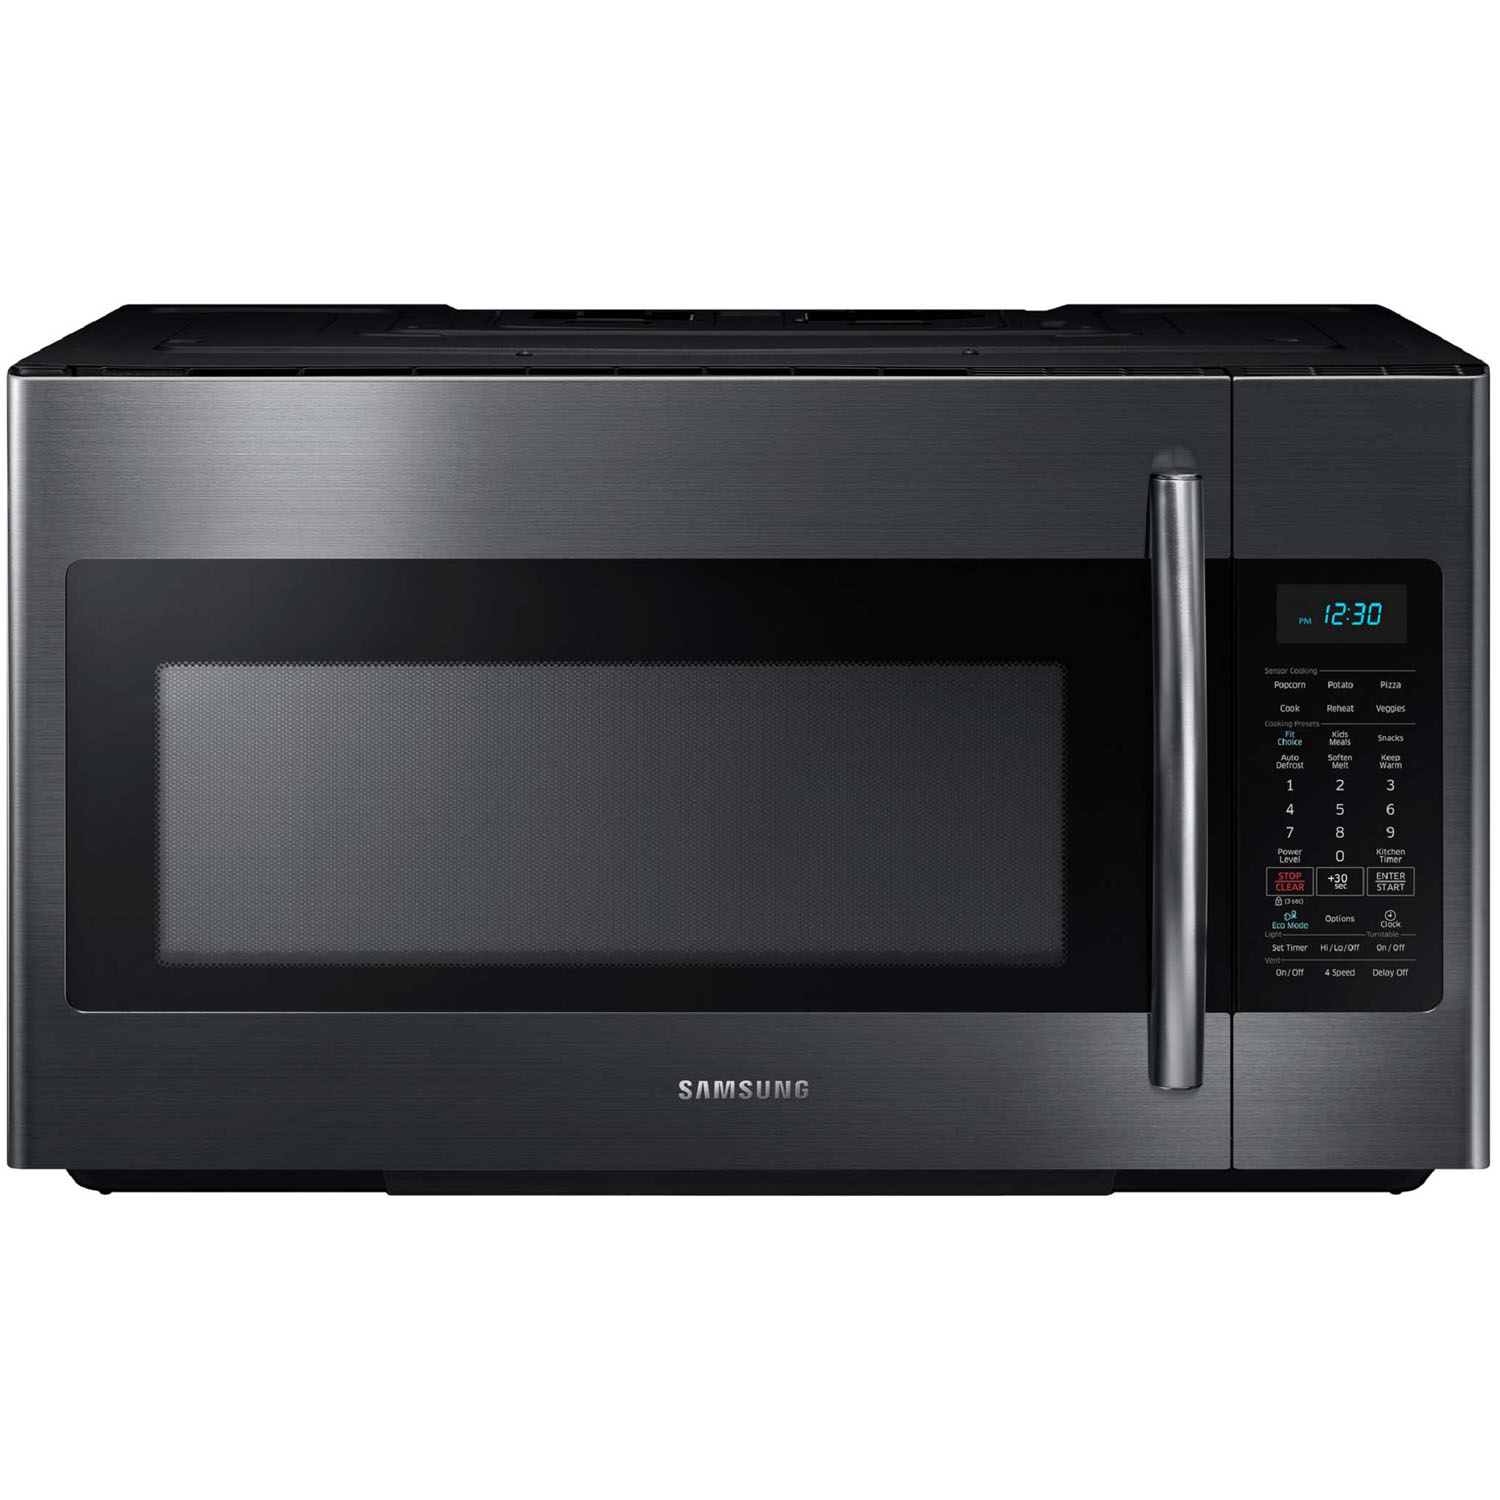 samsung 1 8 cu ft over the range microwave black stainless